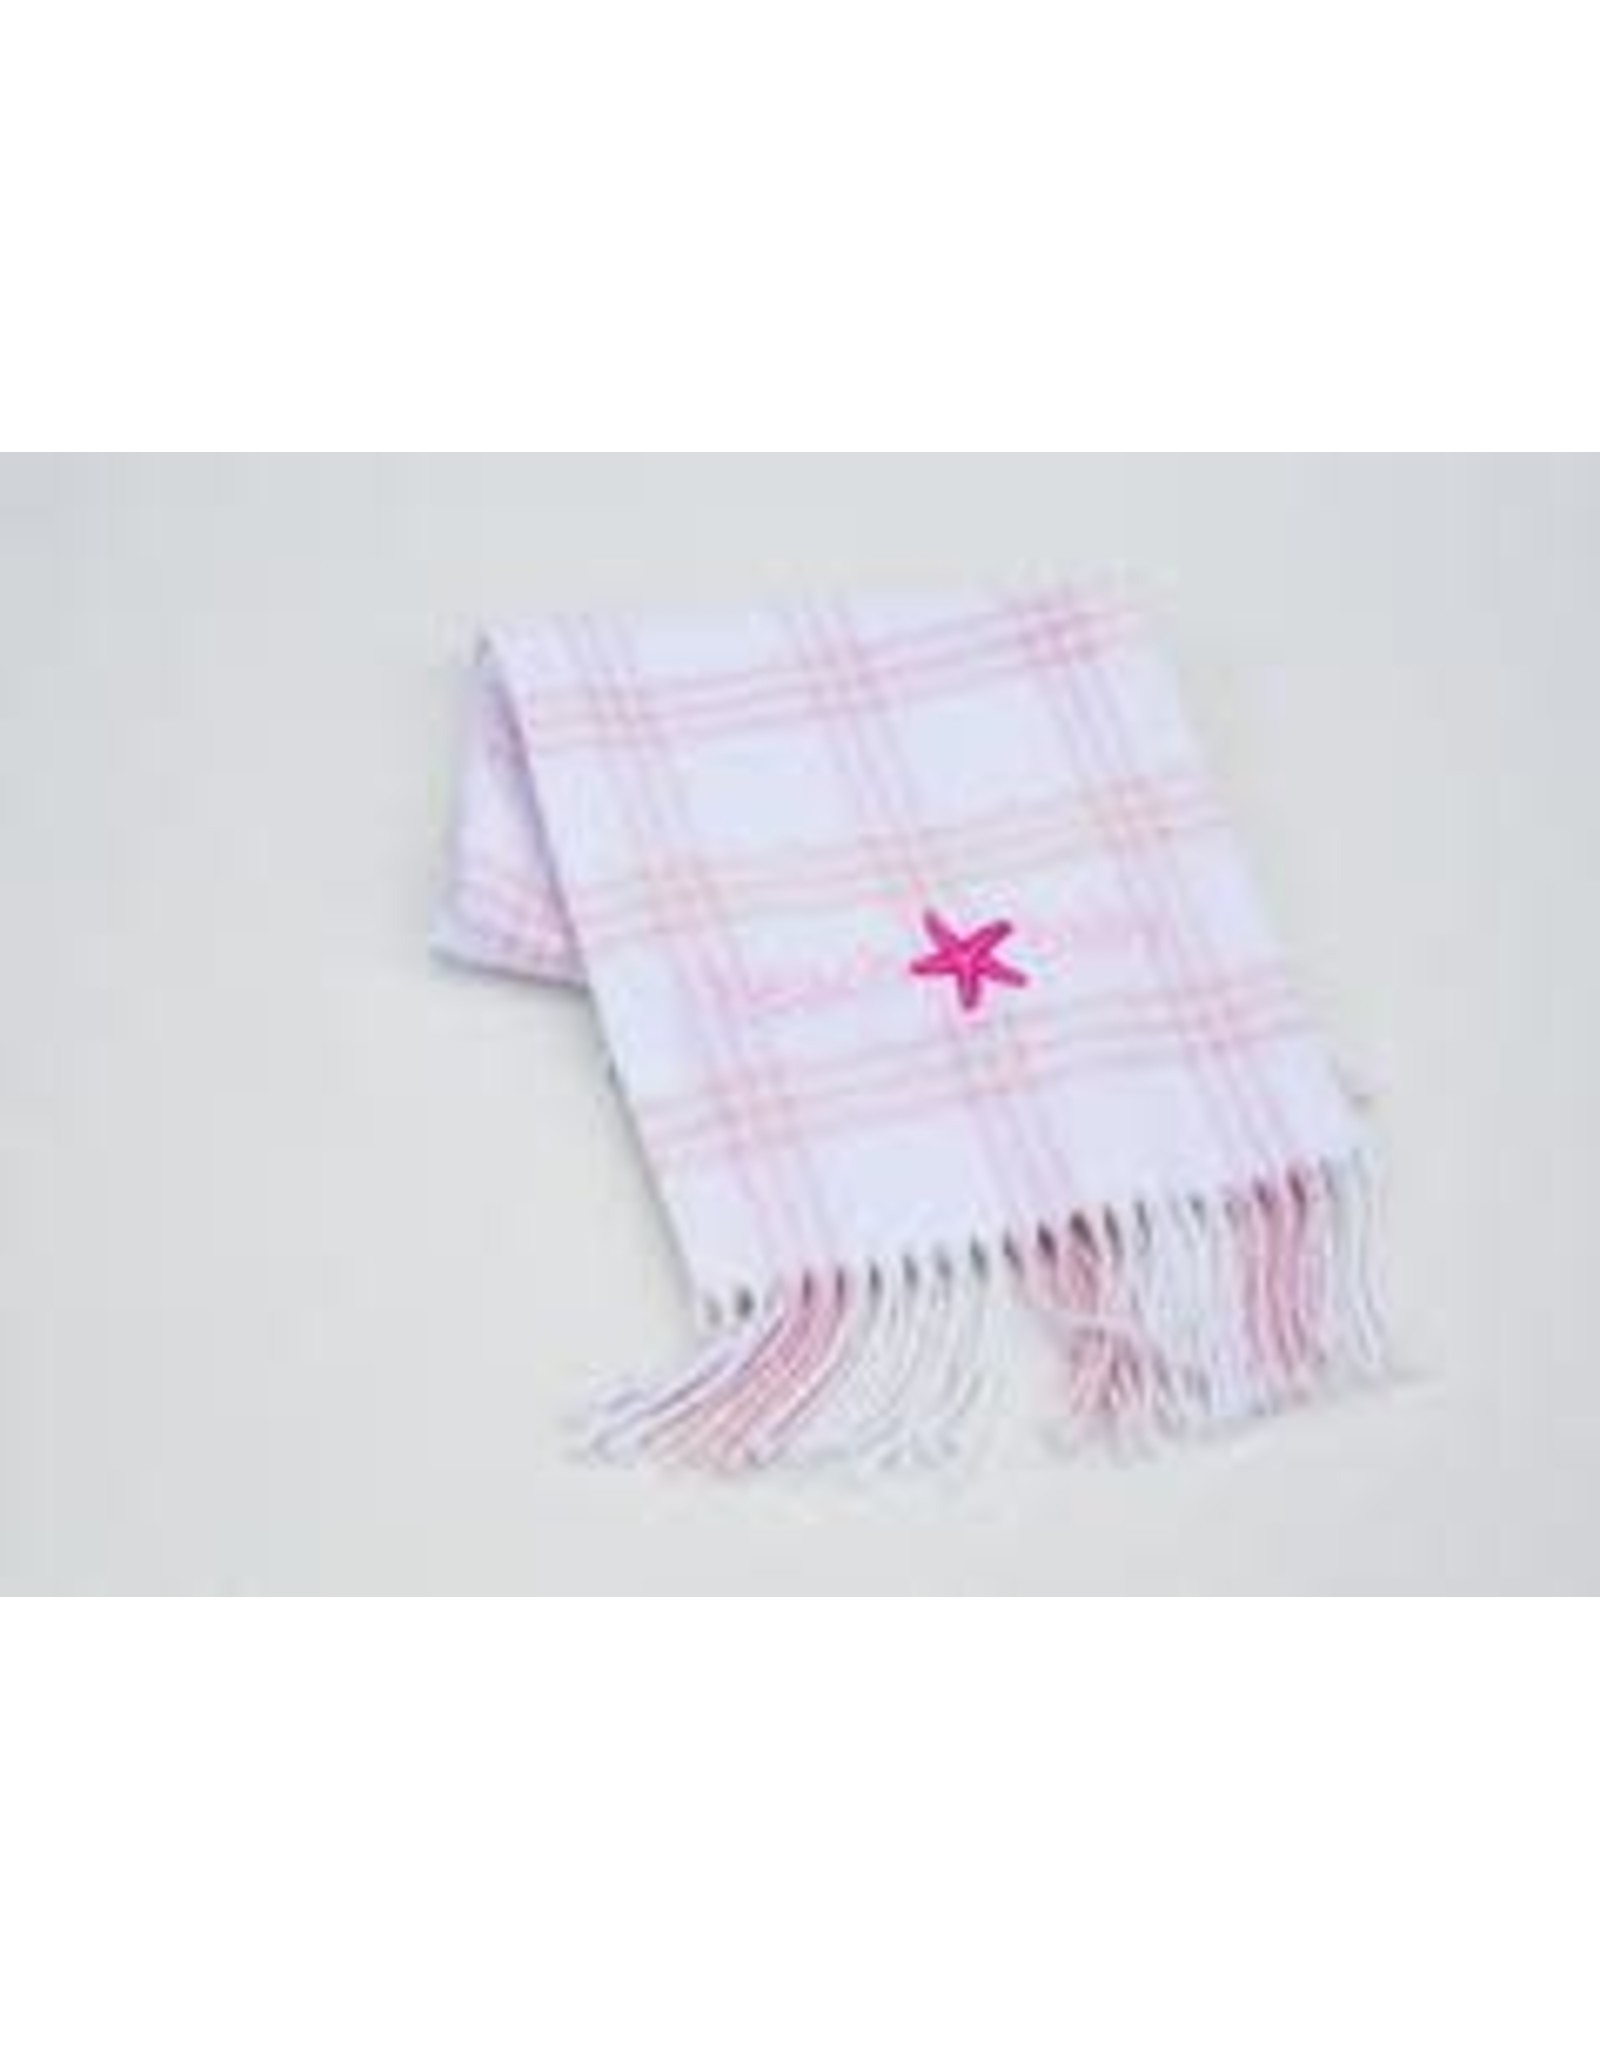 A Soft Idea Blanket 28x36 Windowpane White/Pink